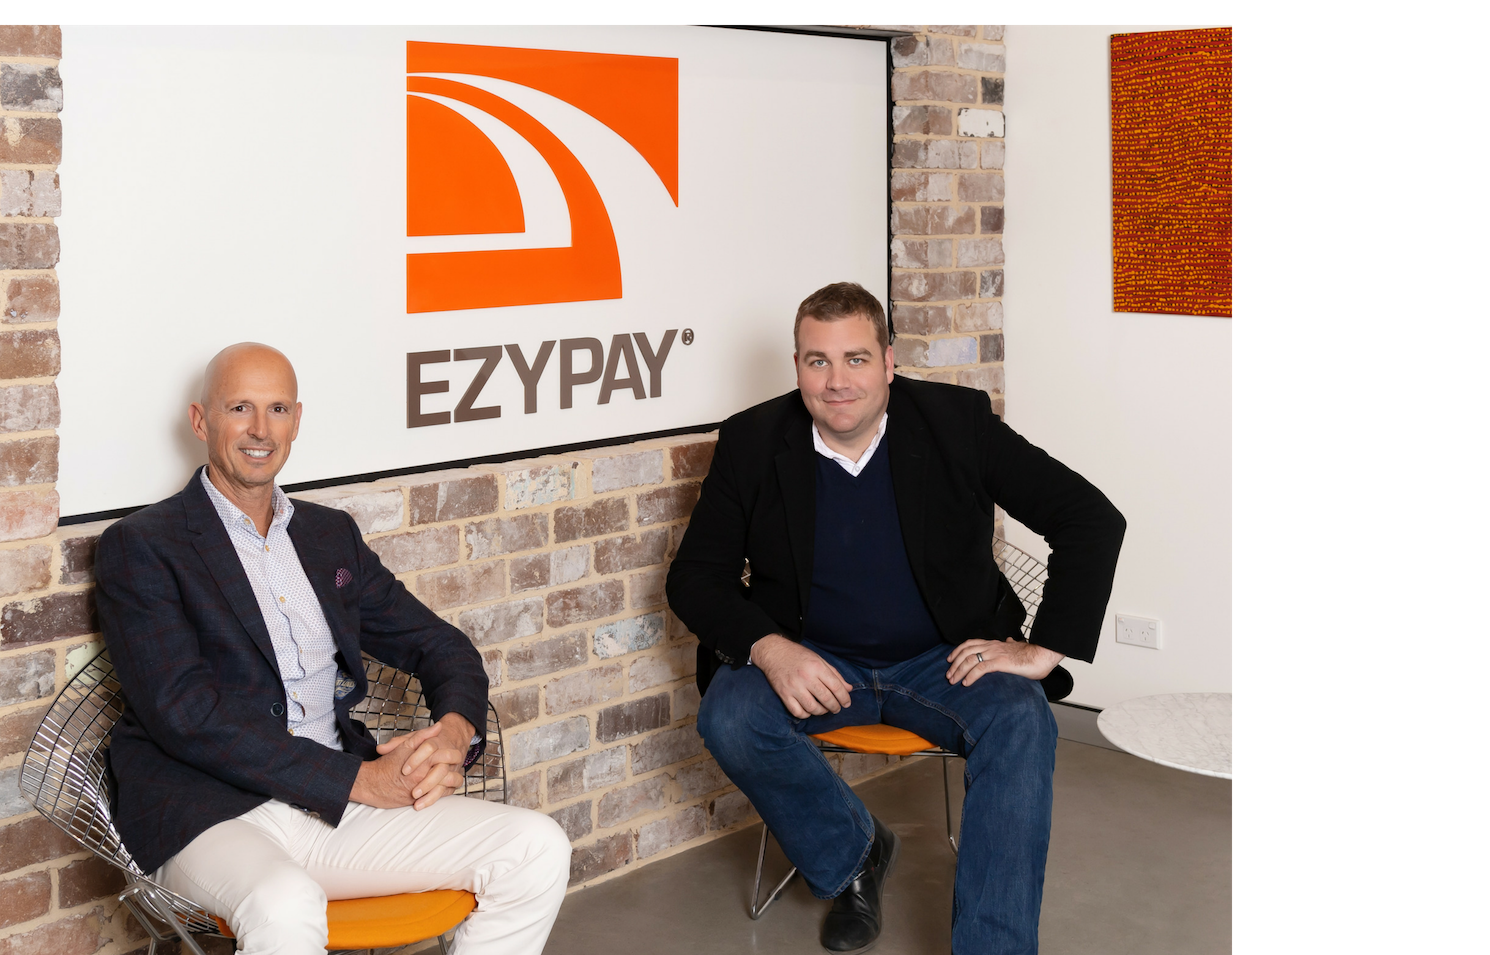 careers-ezypay-our-story